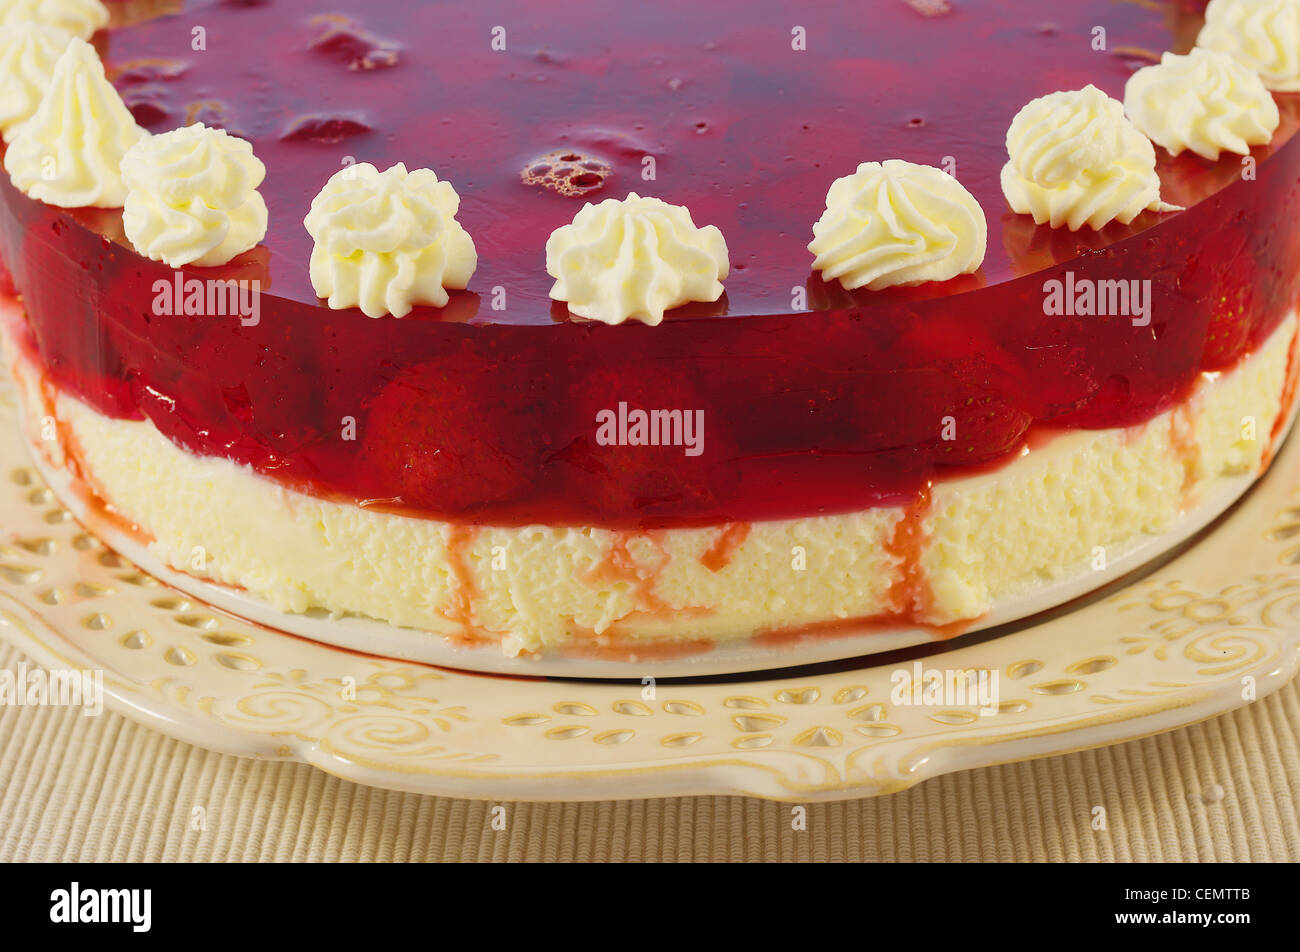 Cheesecake with strawberries in a strawberry jelly - Stock Image